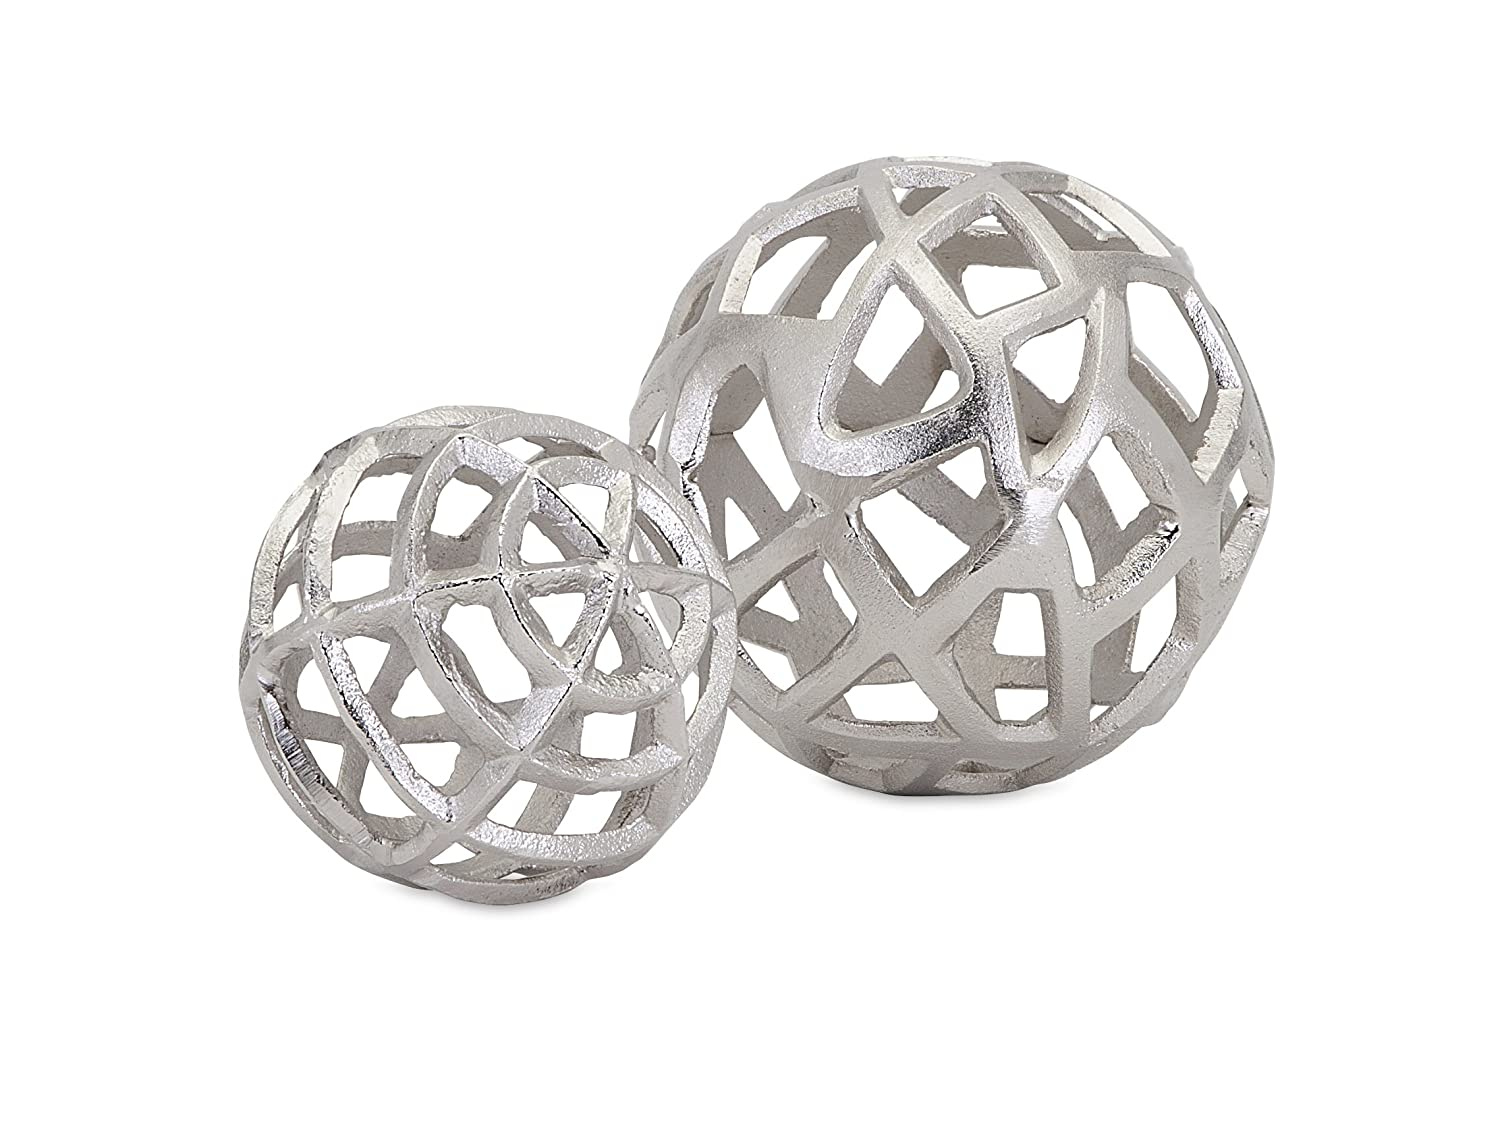 Imax Trisha Yearwood Home 10464-2 Outer Banks Spheres - Set of 2